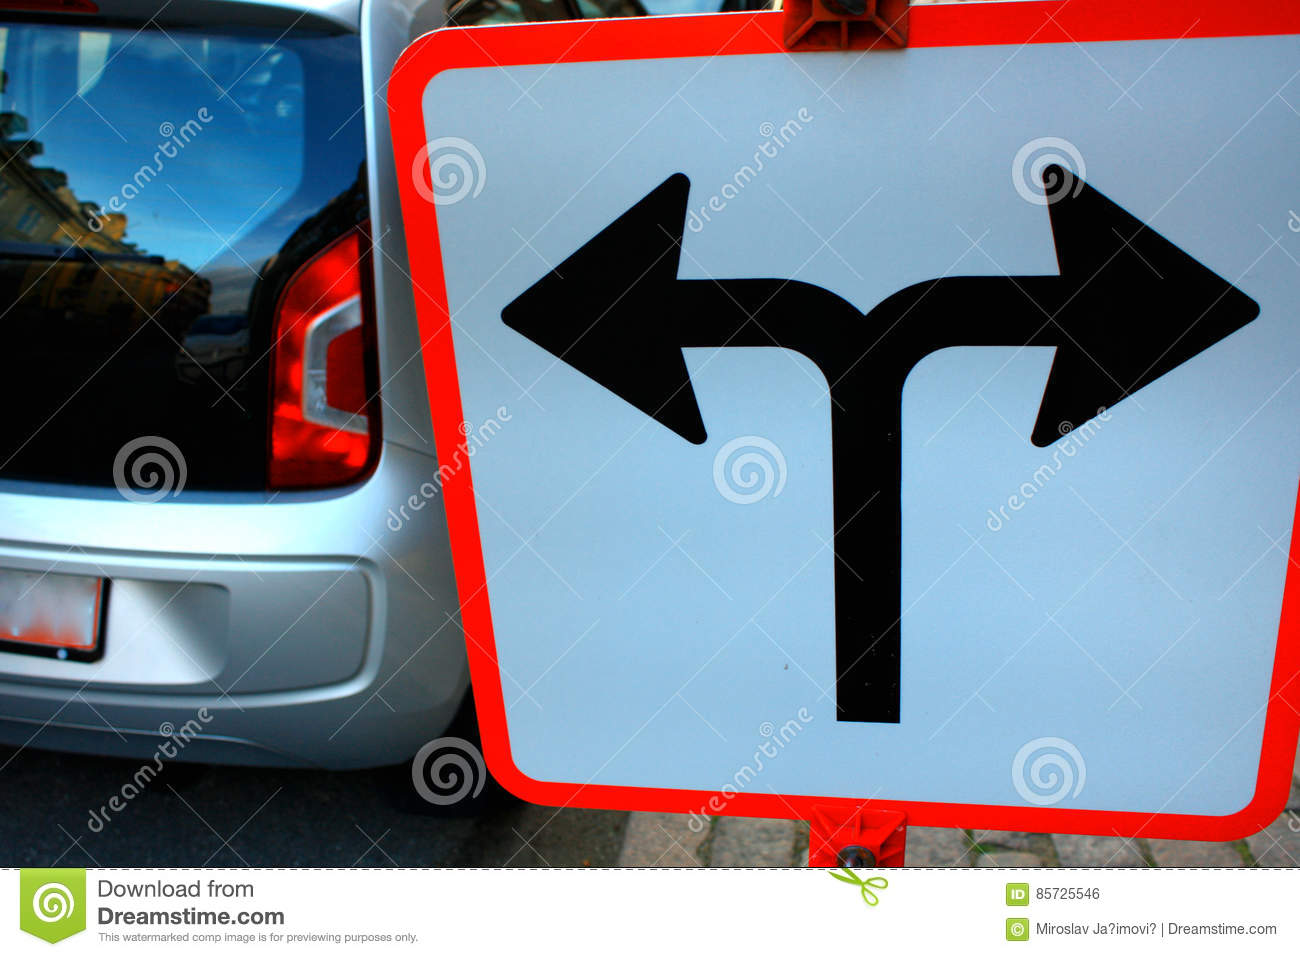 Traffic Signs in front of crossroad, Direction turn left or turn